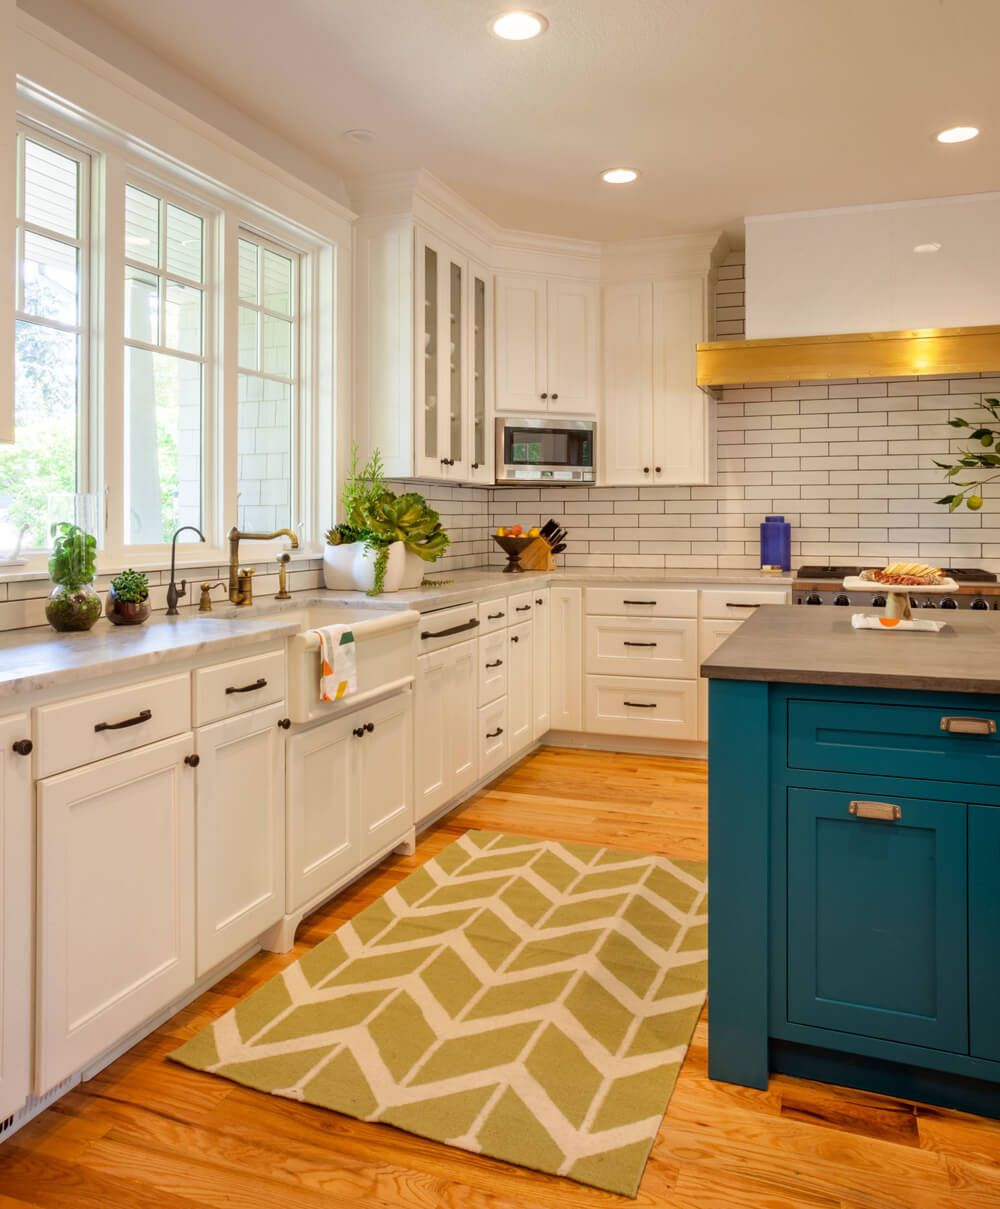 7 Kitchen Colour Ideas for Every Type of